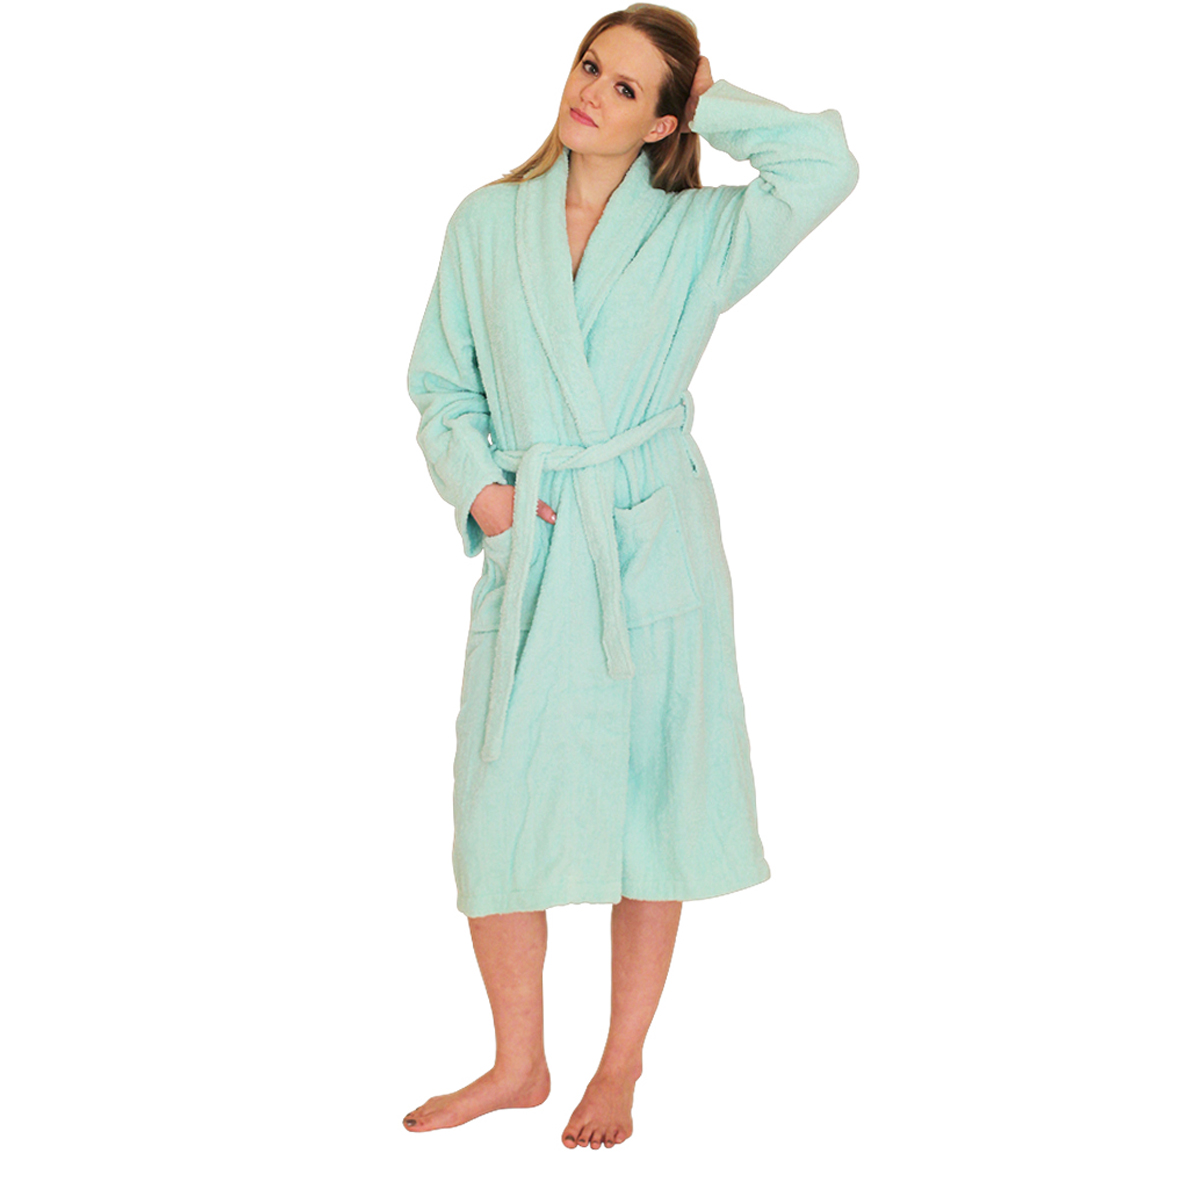 Bathrobe TerryCloth (Terry cloth) Bath Robe for women- $34.99 Colors: Ecru-S/M. Sizes: